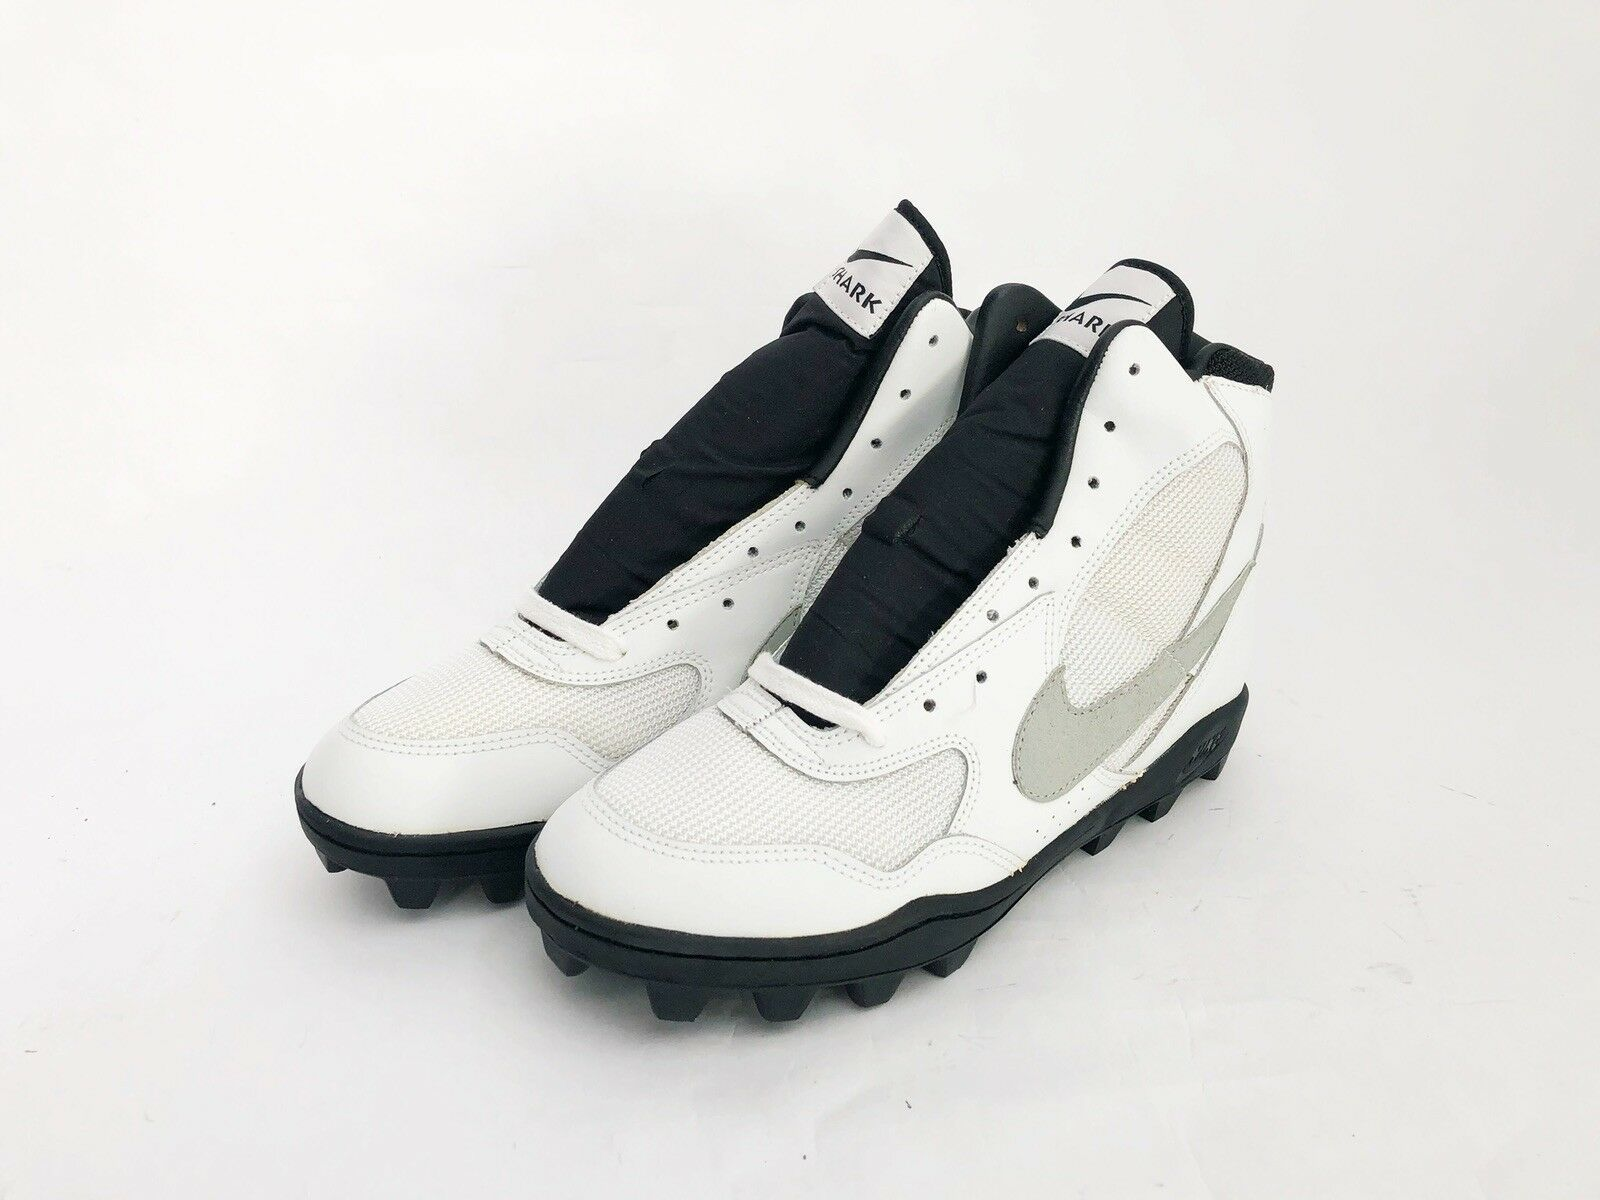 Vintage nike land shark high football cleats cleats cleats shoes men's size 8 NIB NOS 1990 5f5bd6